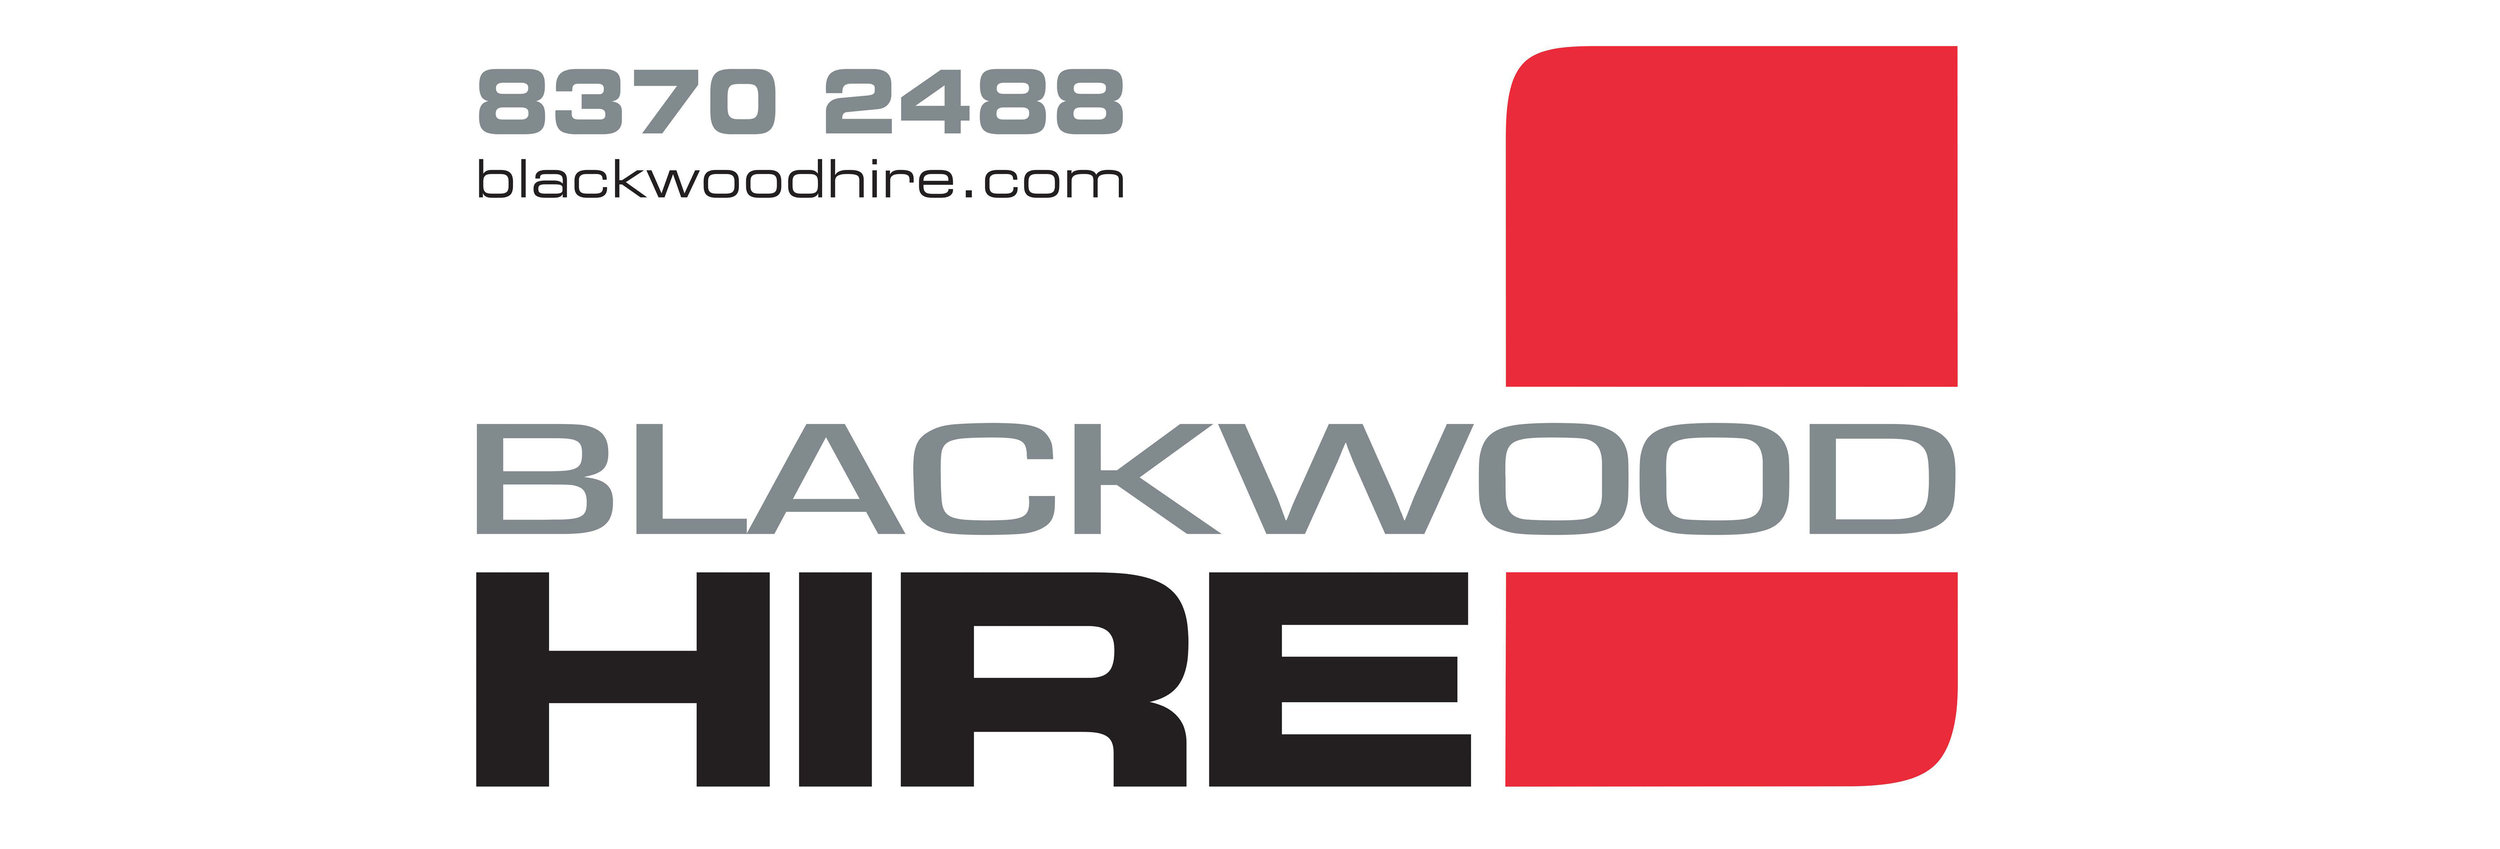 Blackwood Hire.jpg